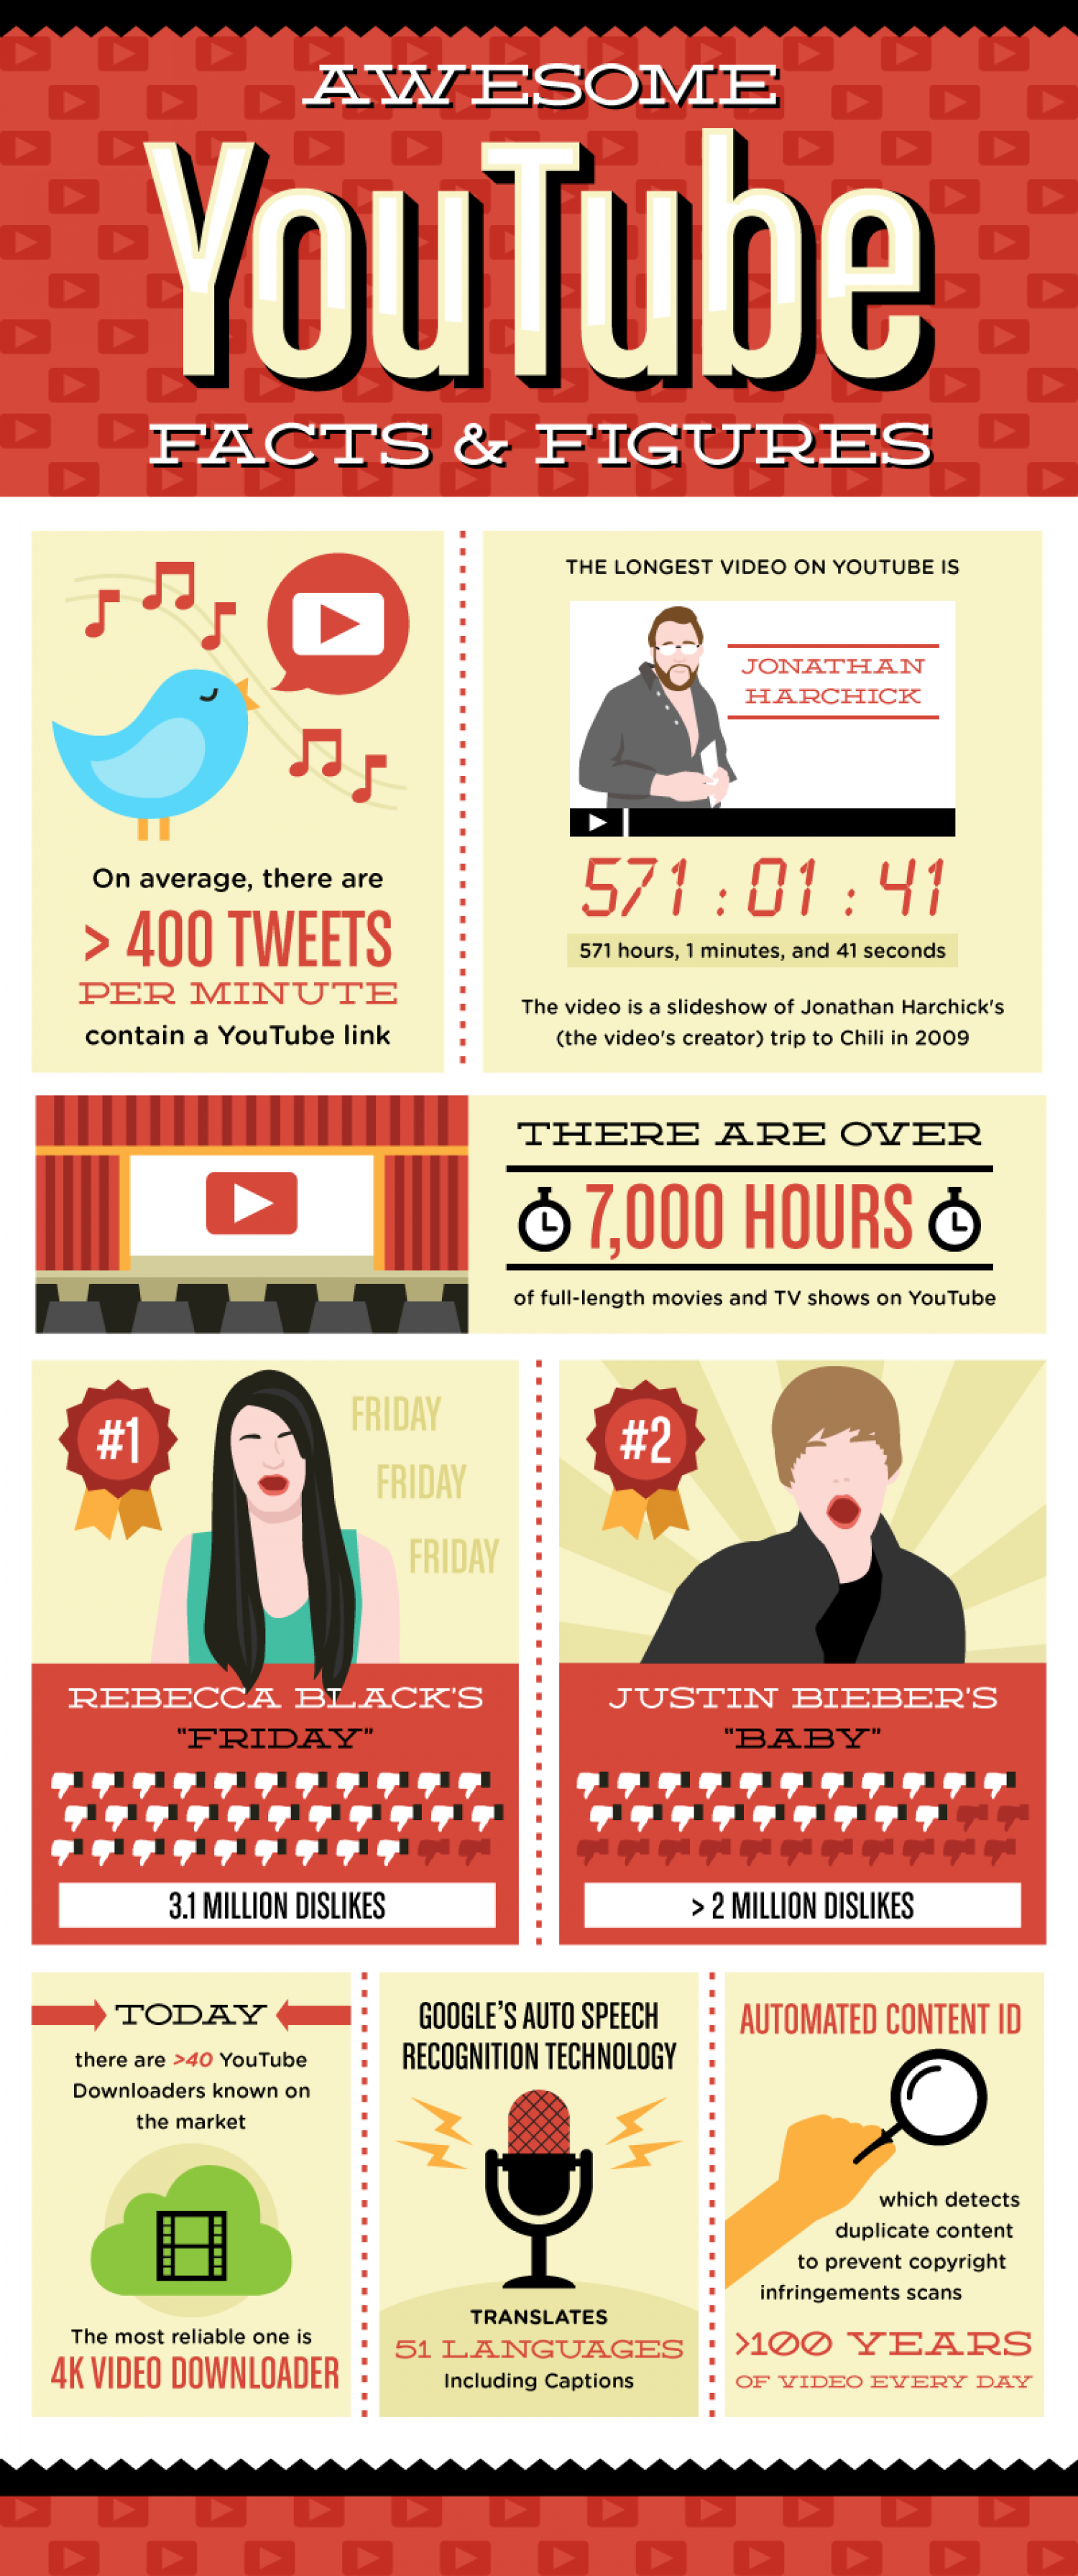 Awesome Youtube Facts & Figures Infographic